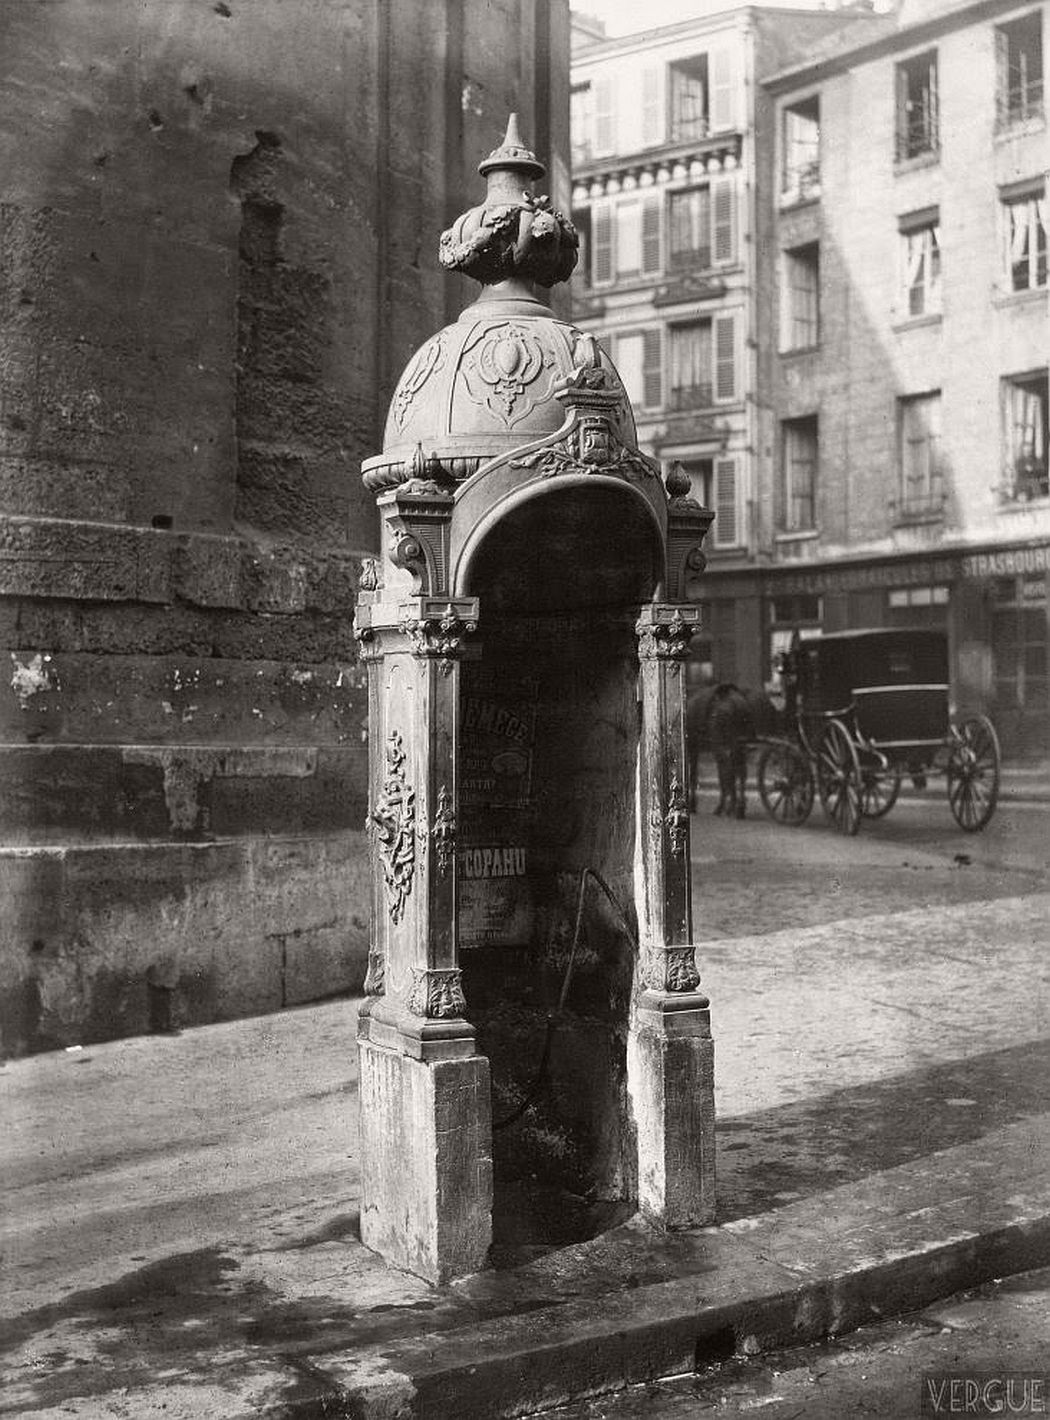 vintage-public-urinals-in-paris-by-charles-marville-19th-century-14